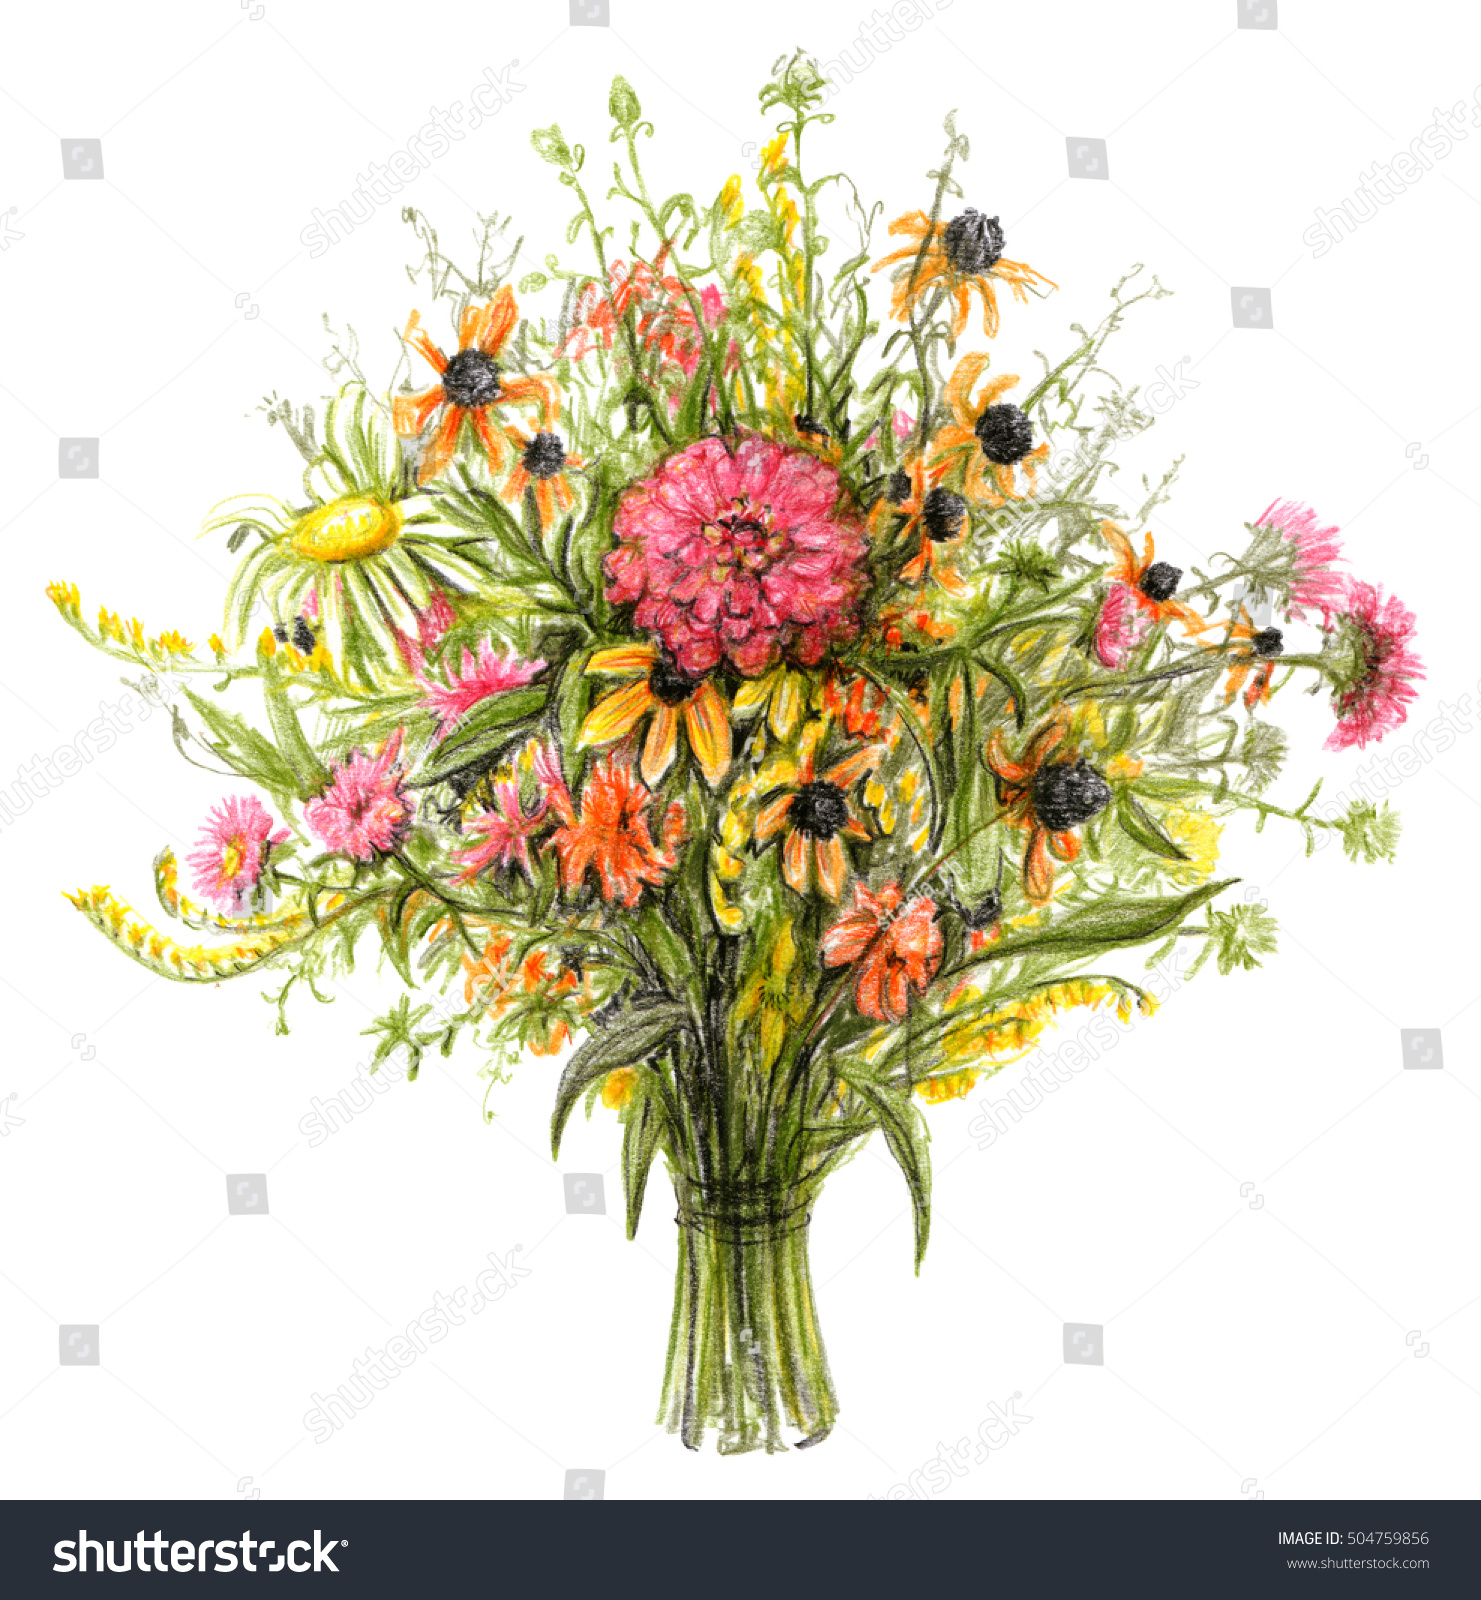 Flowers bouquet color pencil illustration summer stock illustration flowers bouquet color pencil illustration of summer wild flowers and plants isolated on white izmirmasajfo